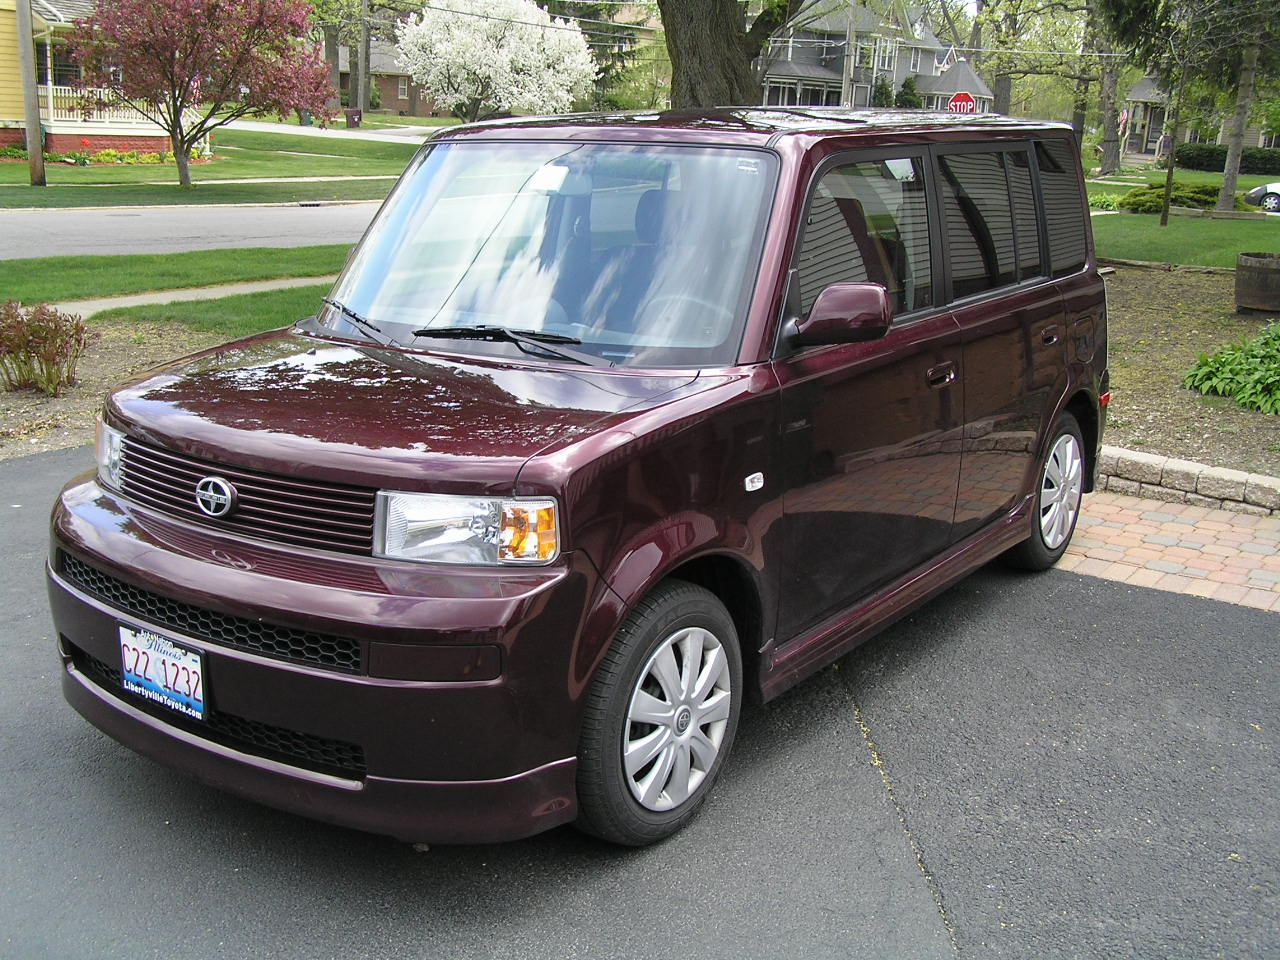 2005 scion xb pictures cargurus for Garage skoda sion